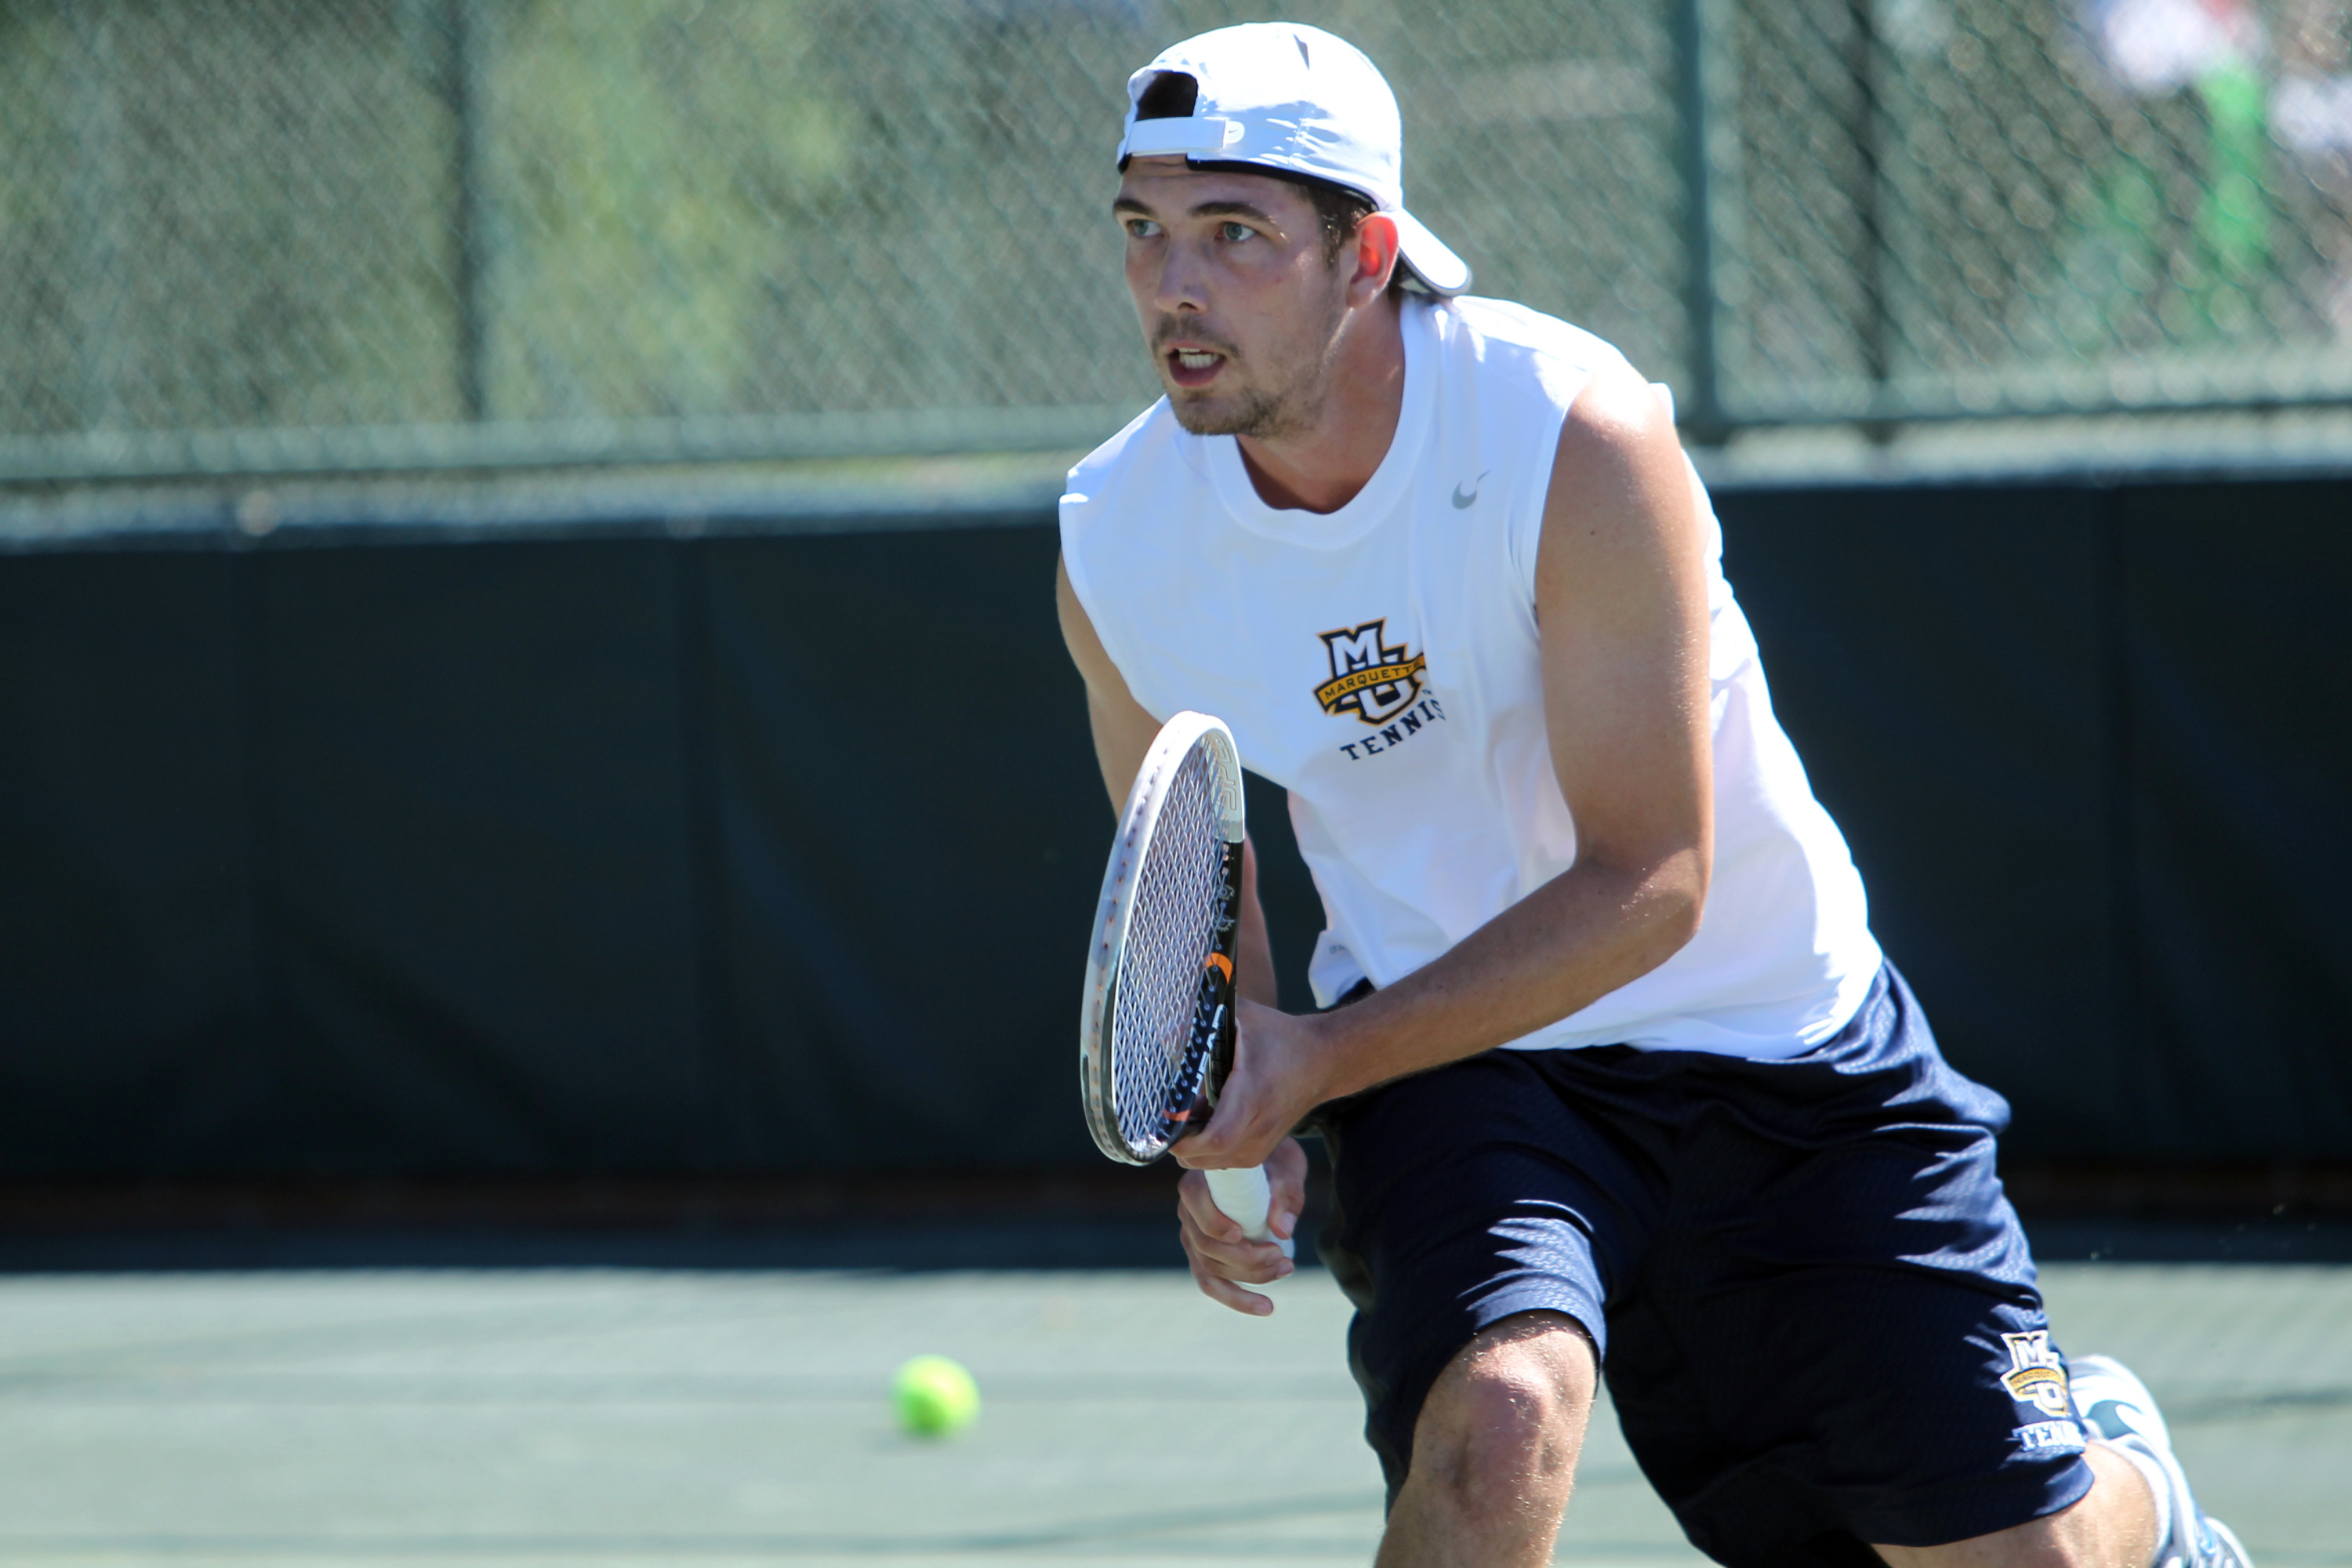 Vukasin Teofanovic nearly picked up his first nationally ranked win this year.